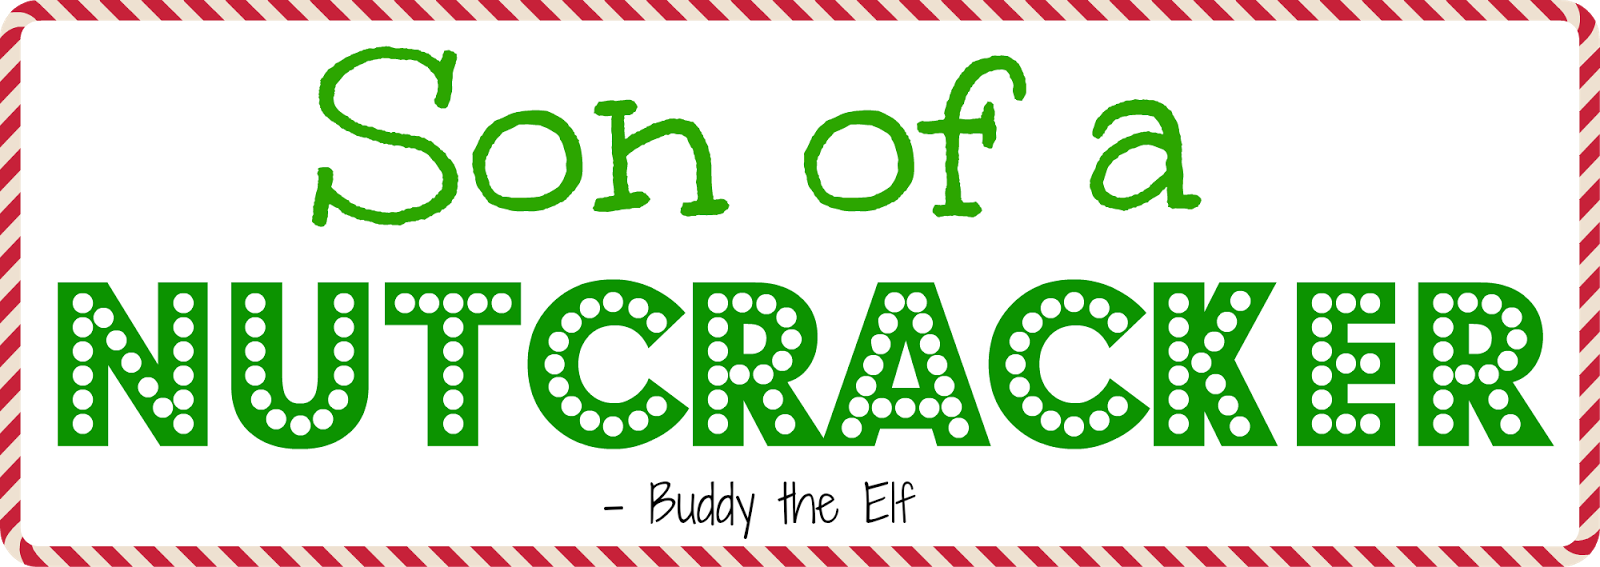 Elf Quotes The Coastie Couple Fourth Day Of Blogmas Holiday Quotes